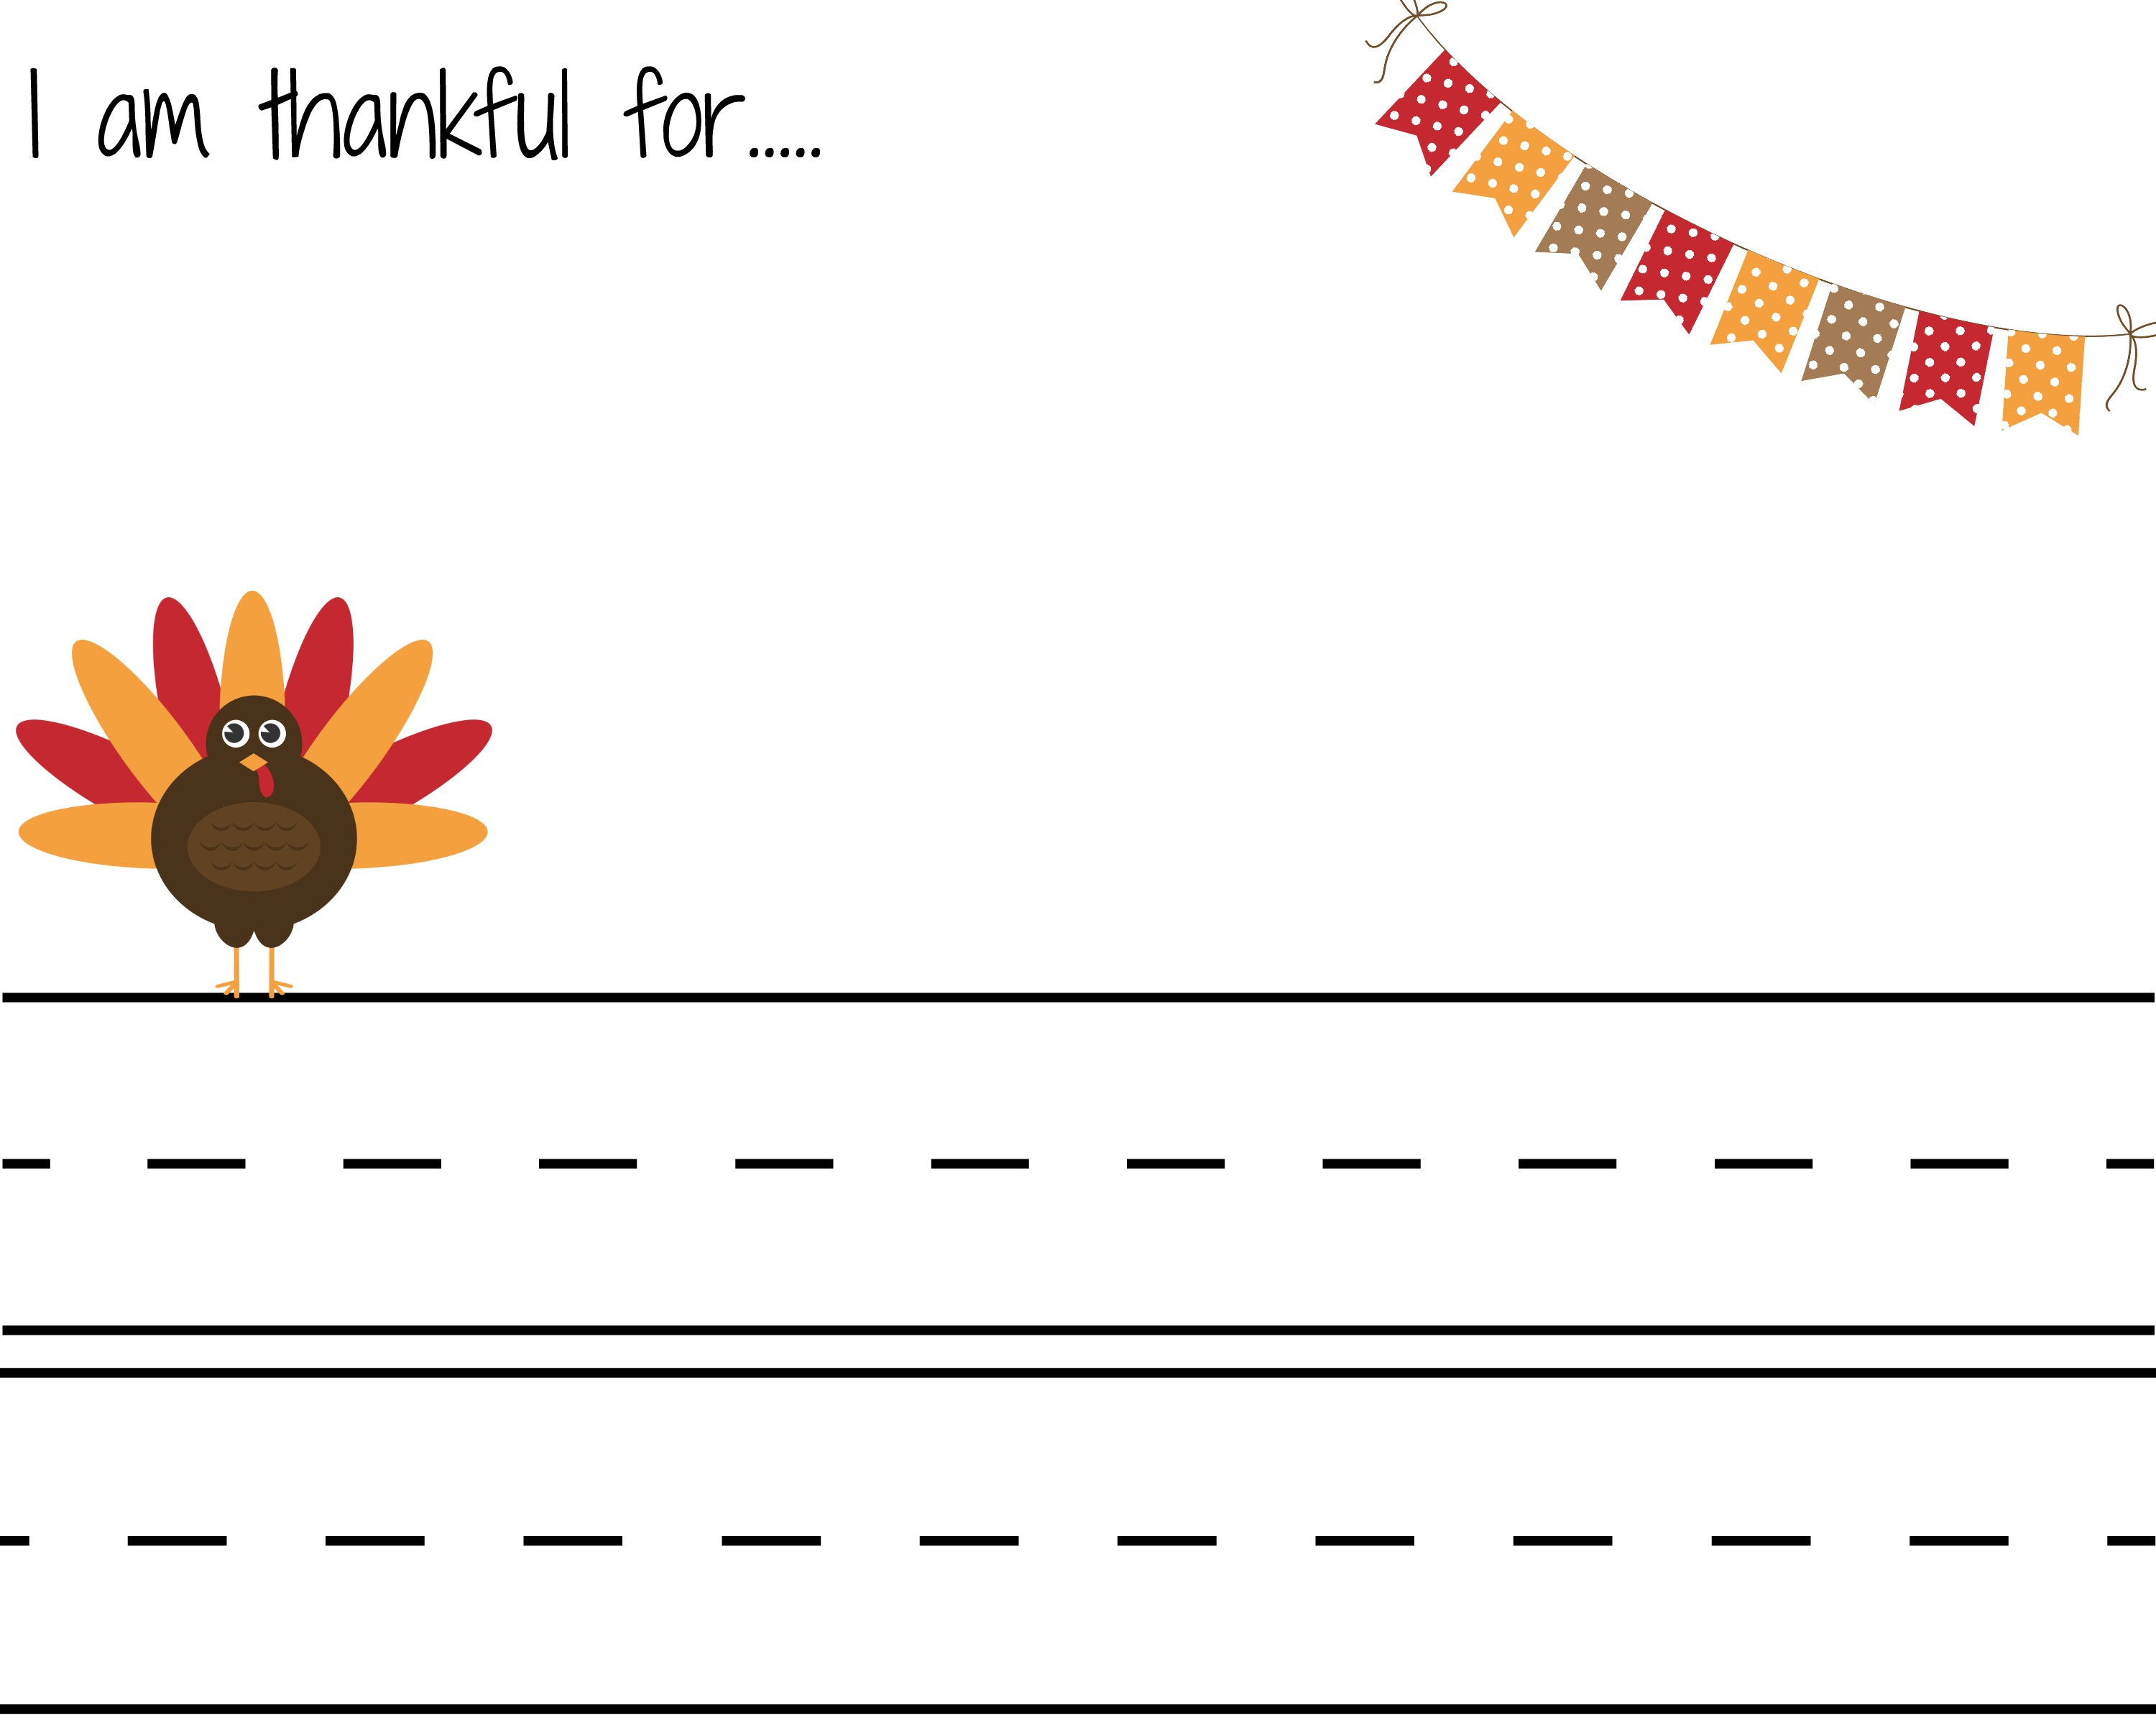 photograph regarding Thankful Printable known as I Am Grateful For. Free of charge Printables - The Chirping Mothers